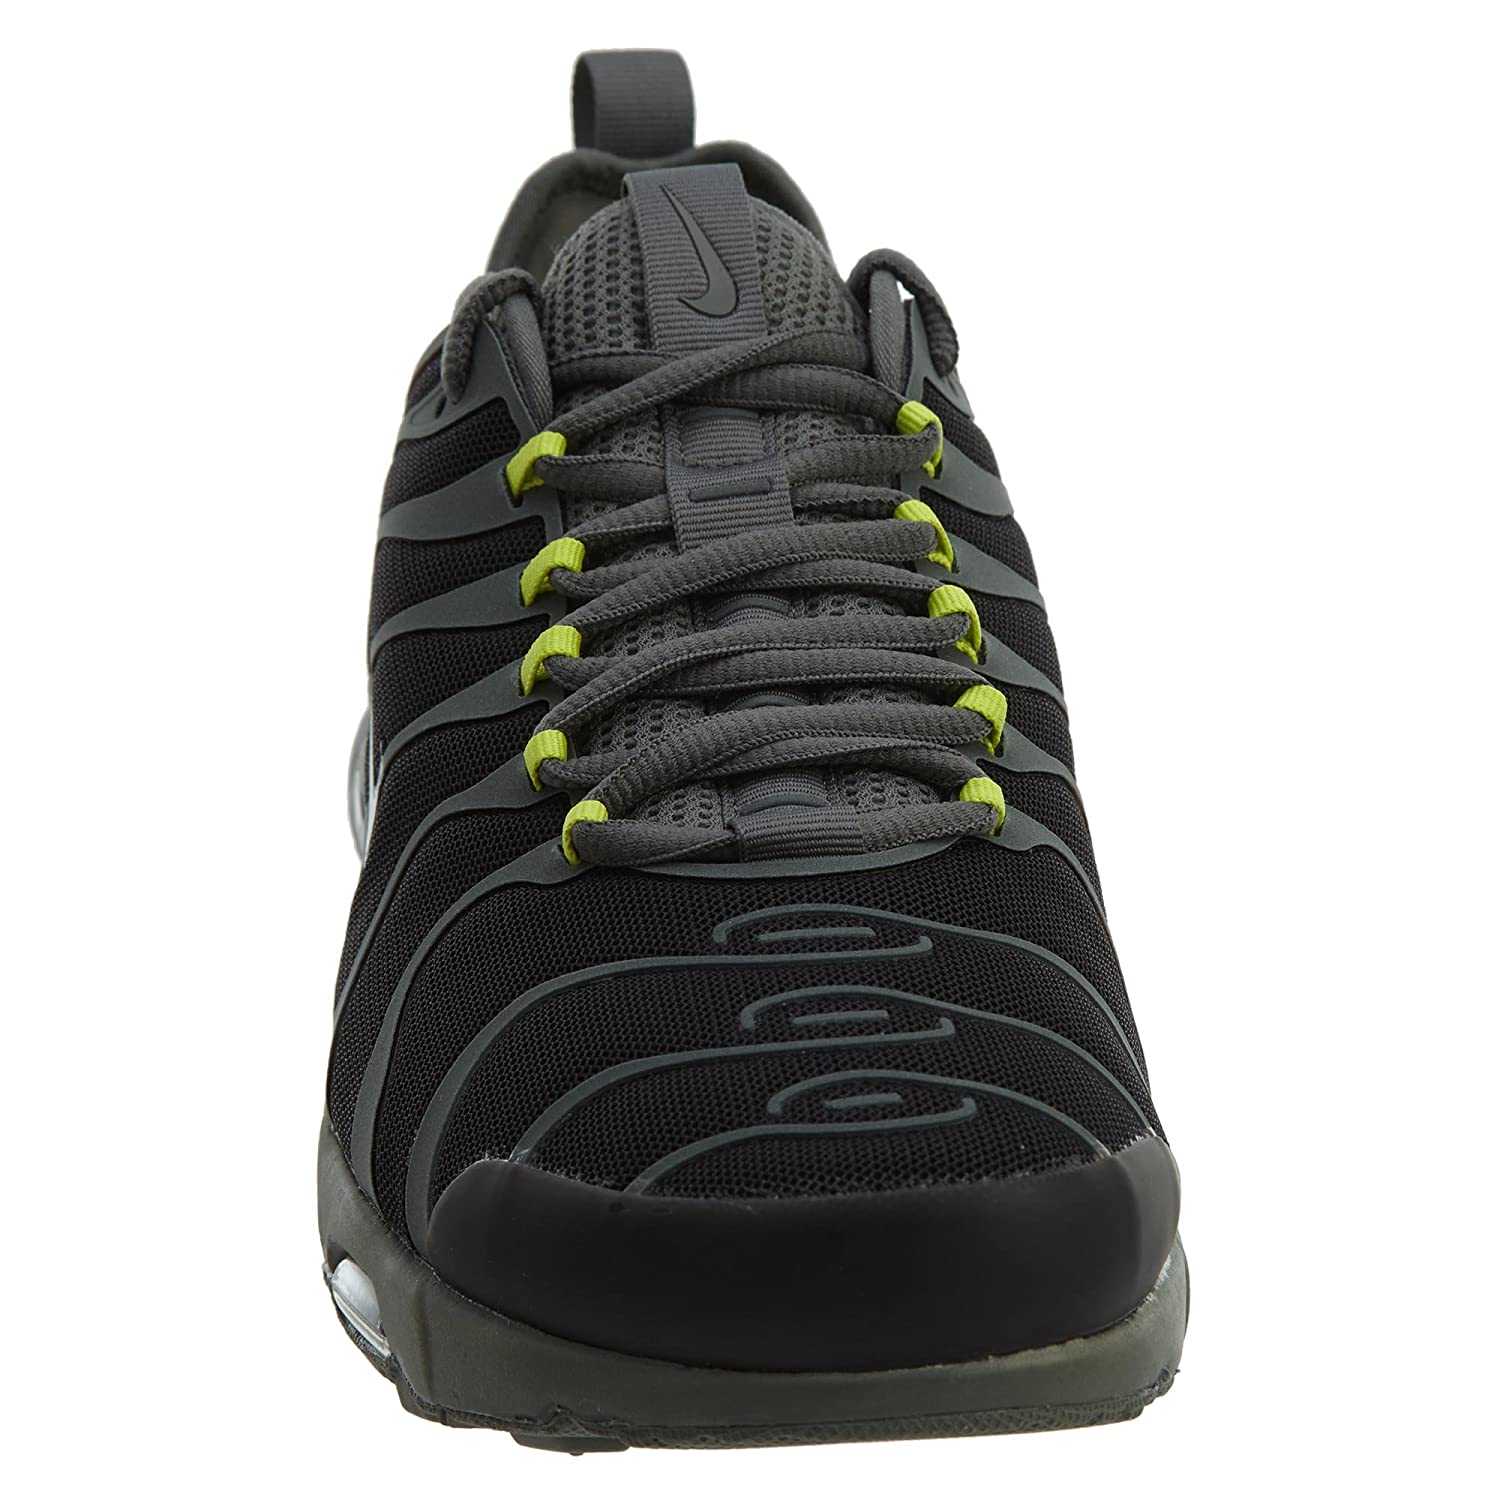 check out 95085 f261f Nike Air Max Plus TN Ultra Hommes Running Trainers 898015 Sneakers  Chaussures: Amazon.fr: Chaussures et Sacs